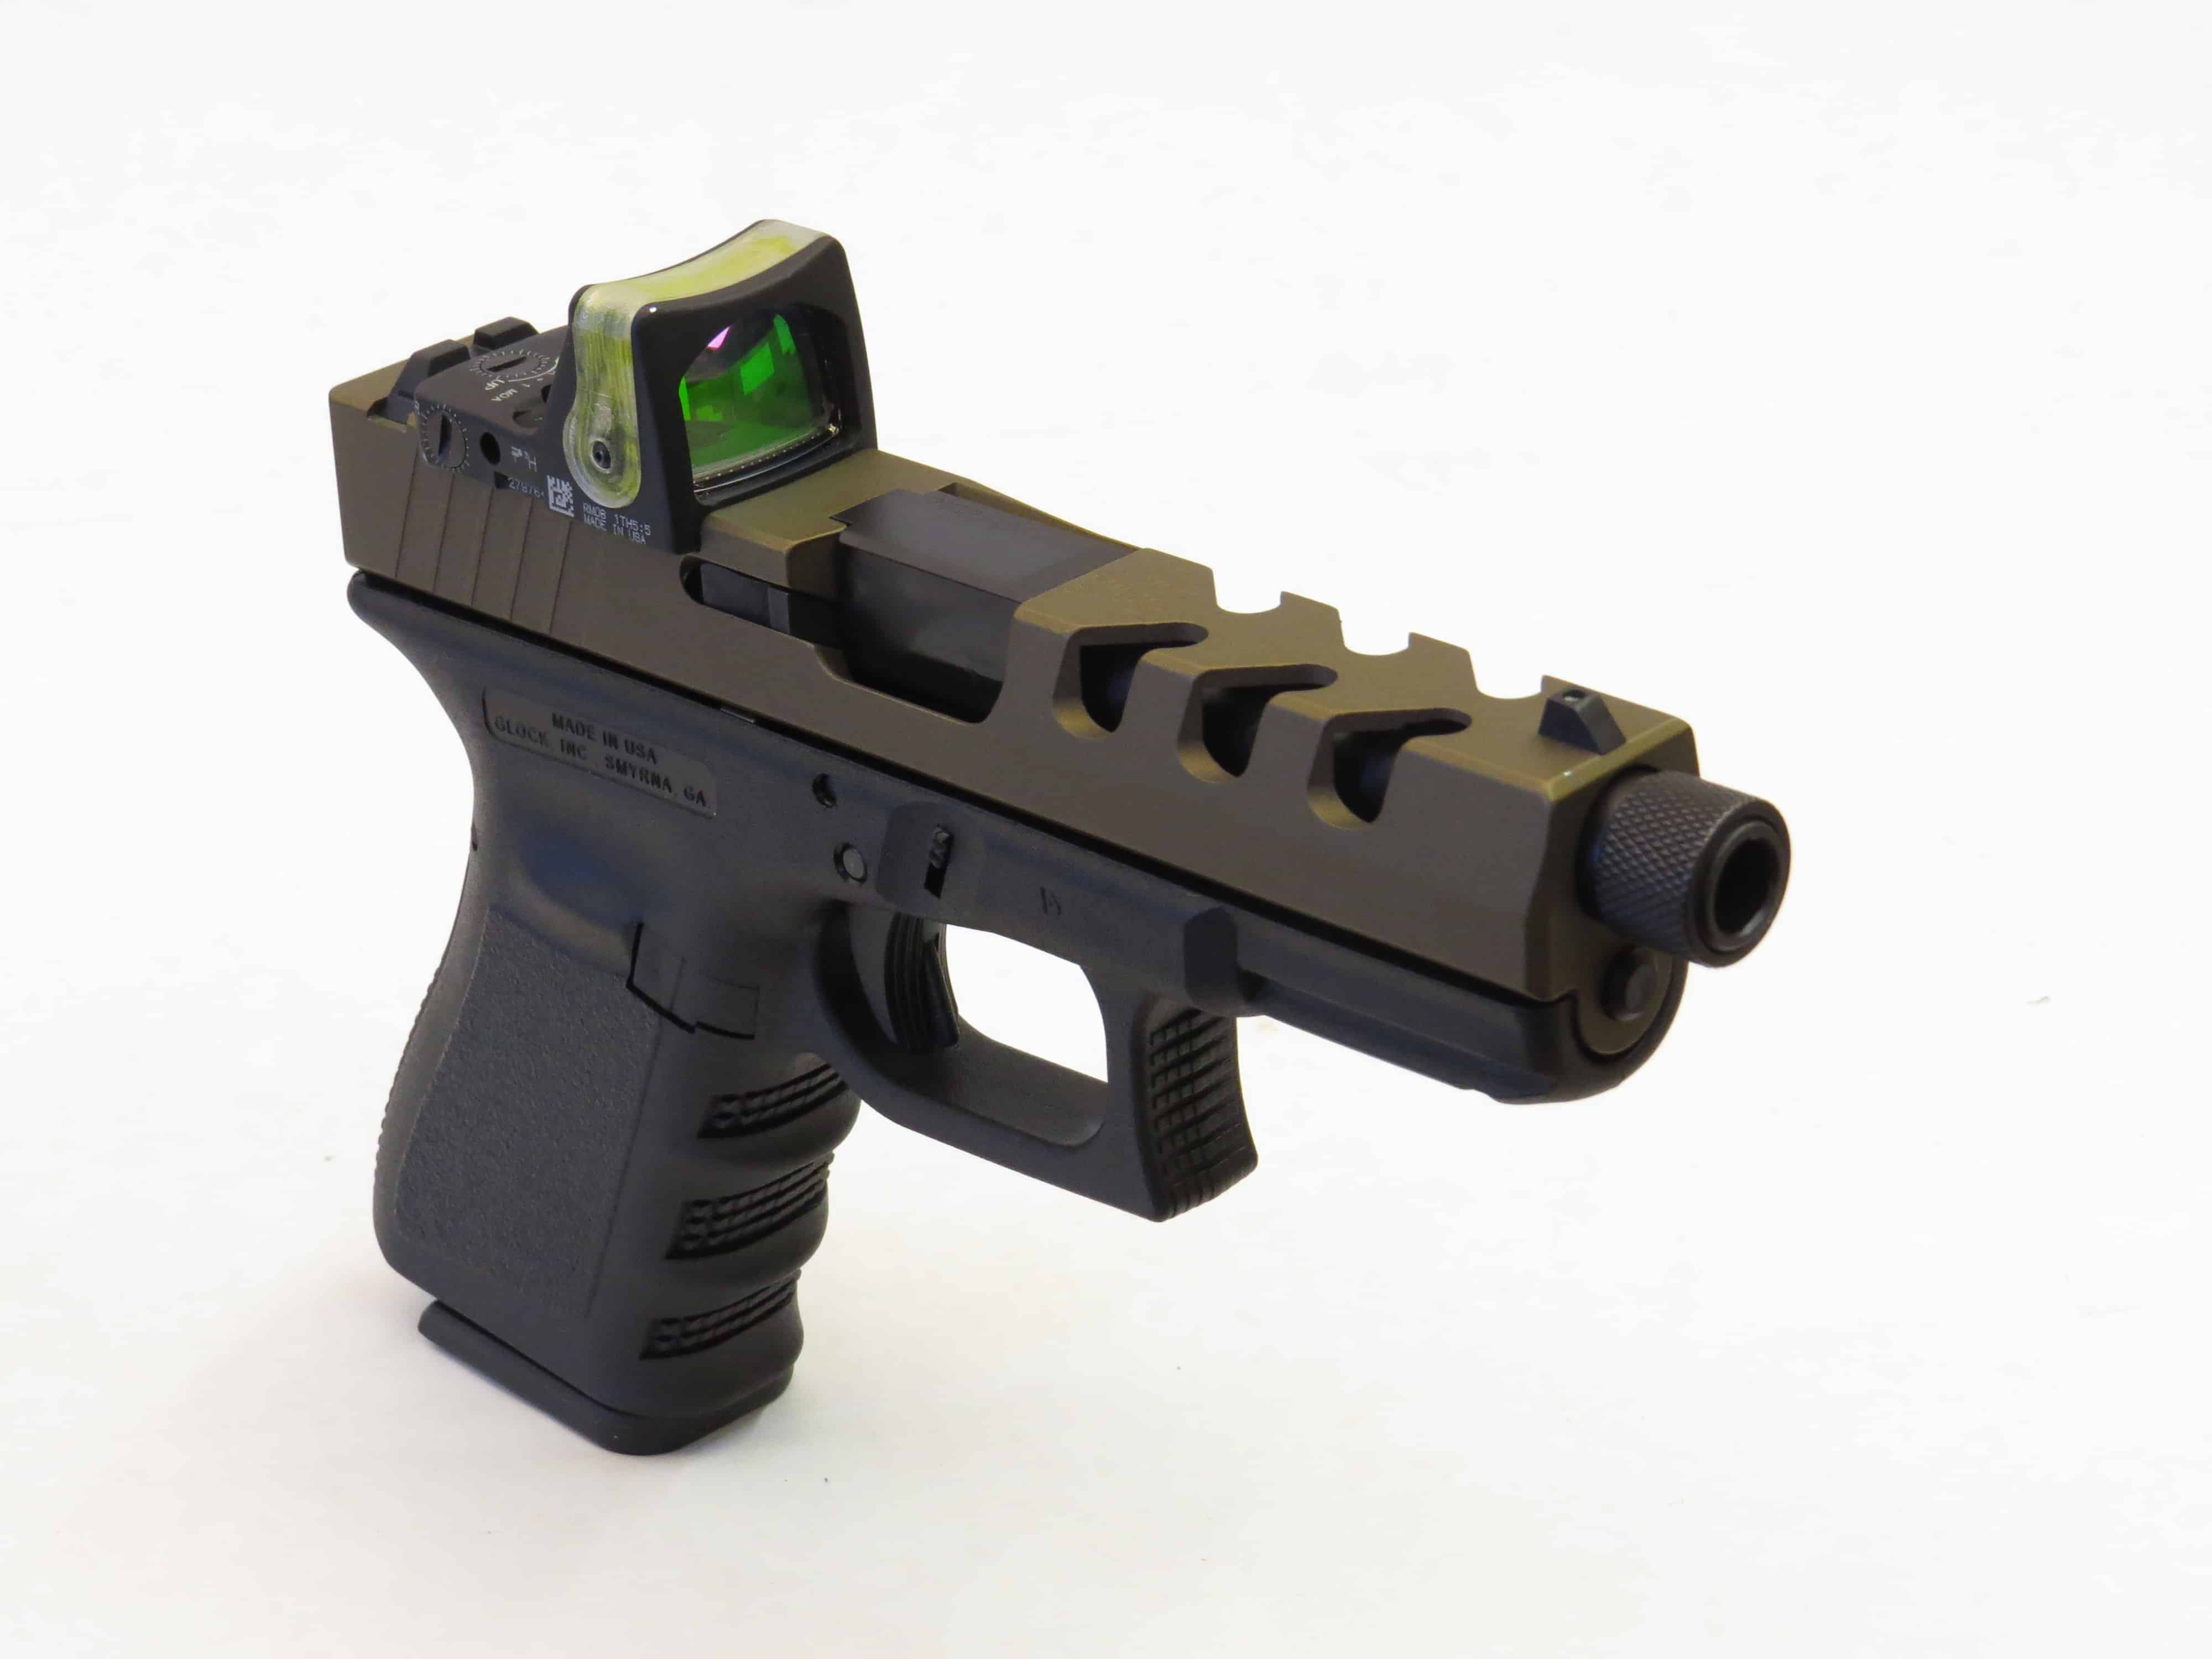 Rock Slide G23 Gen 3 Upper